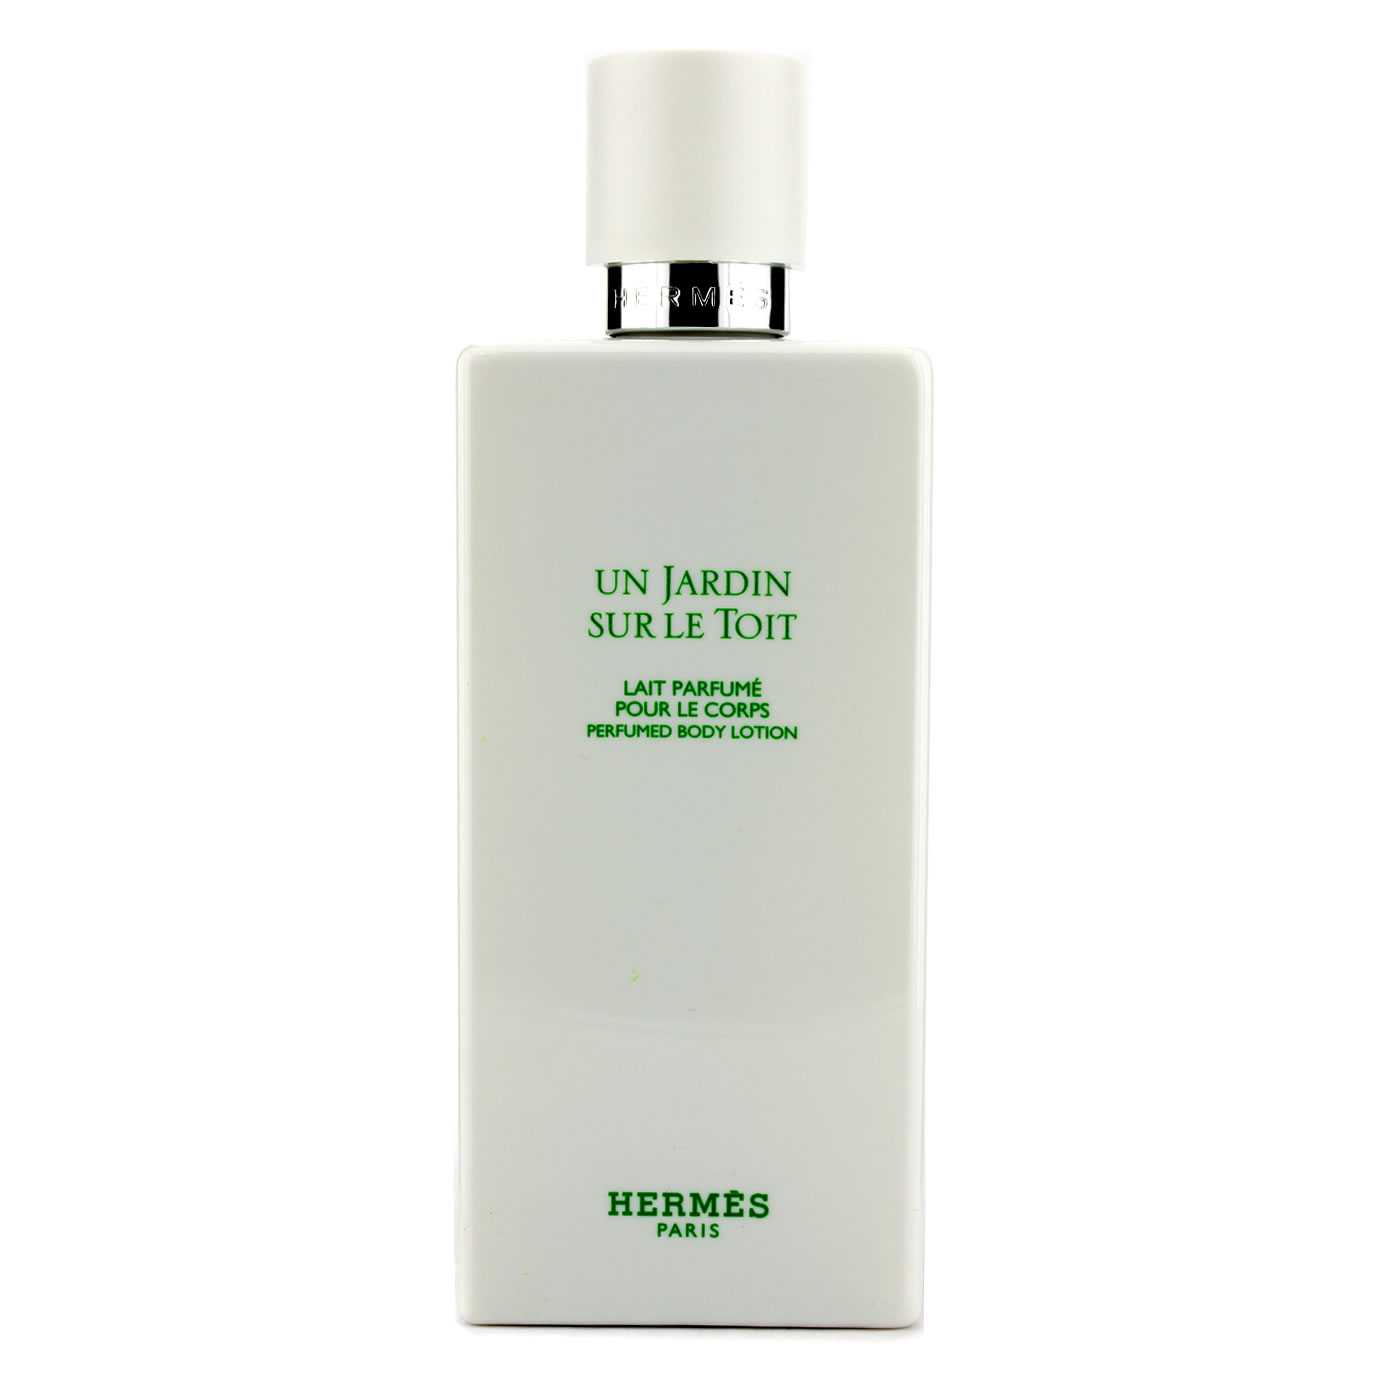 Hermes  200ml three 200ml voce